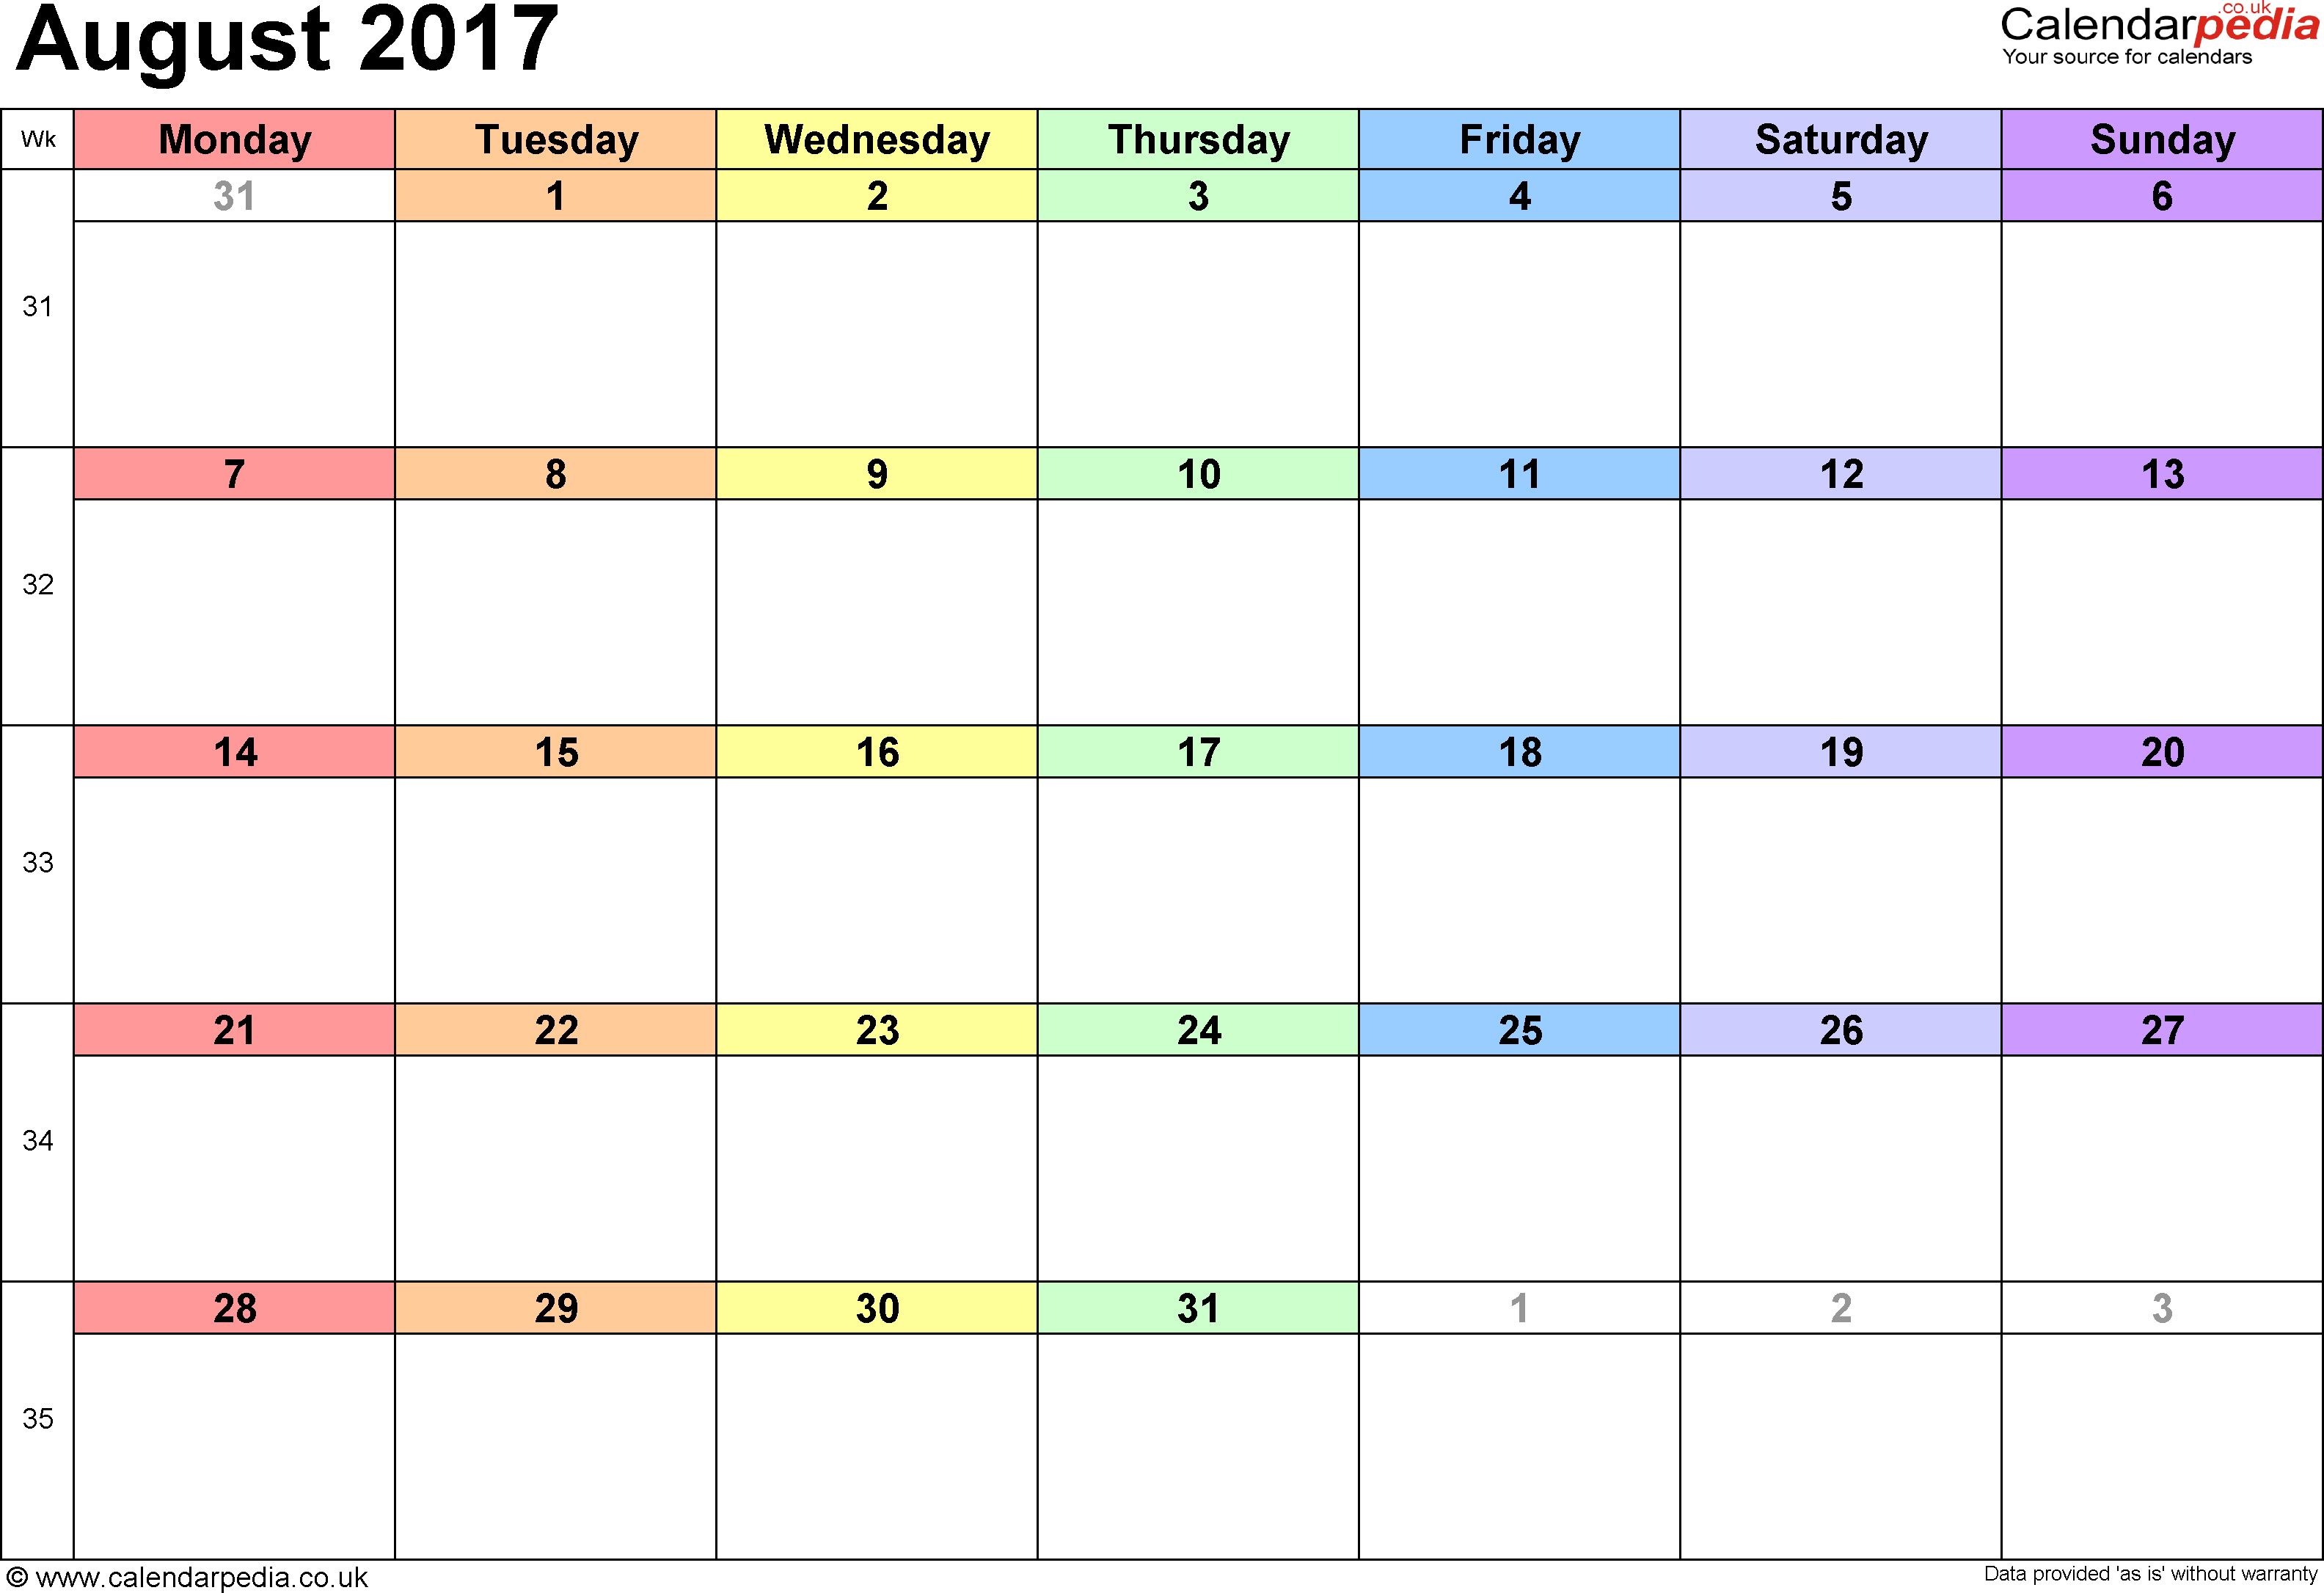 Calendar August 2017, landscape orientation, 1 page, with UK bank holidays and week numbers